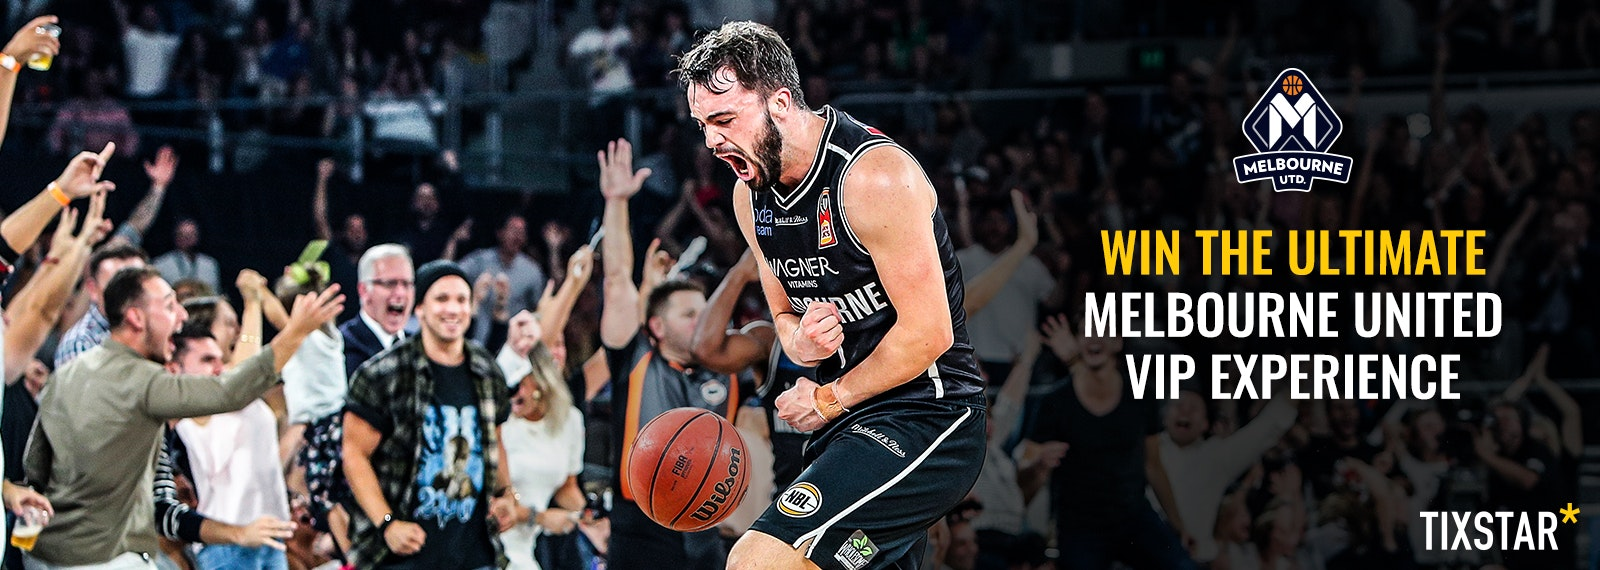 WIN The Ultimate Melbourne United VIP Experience